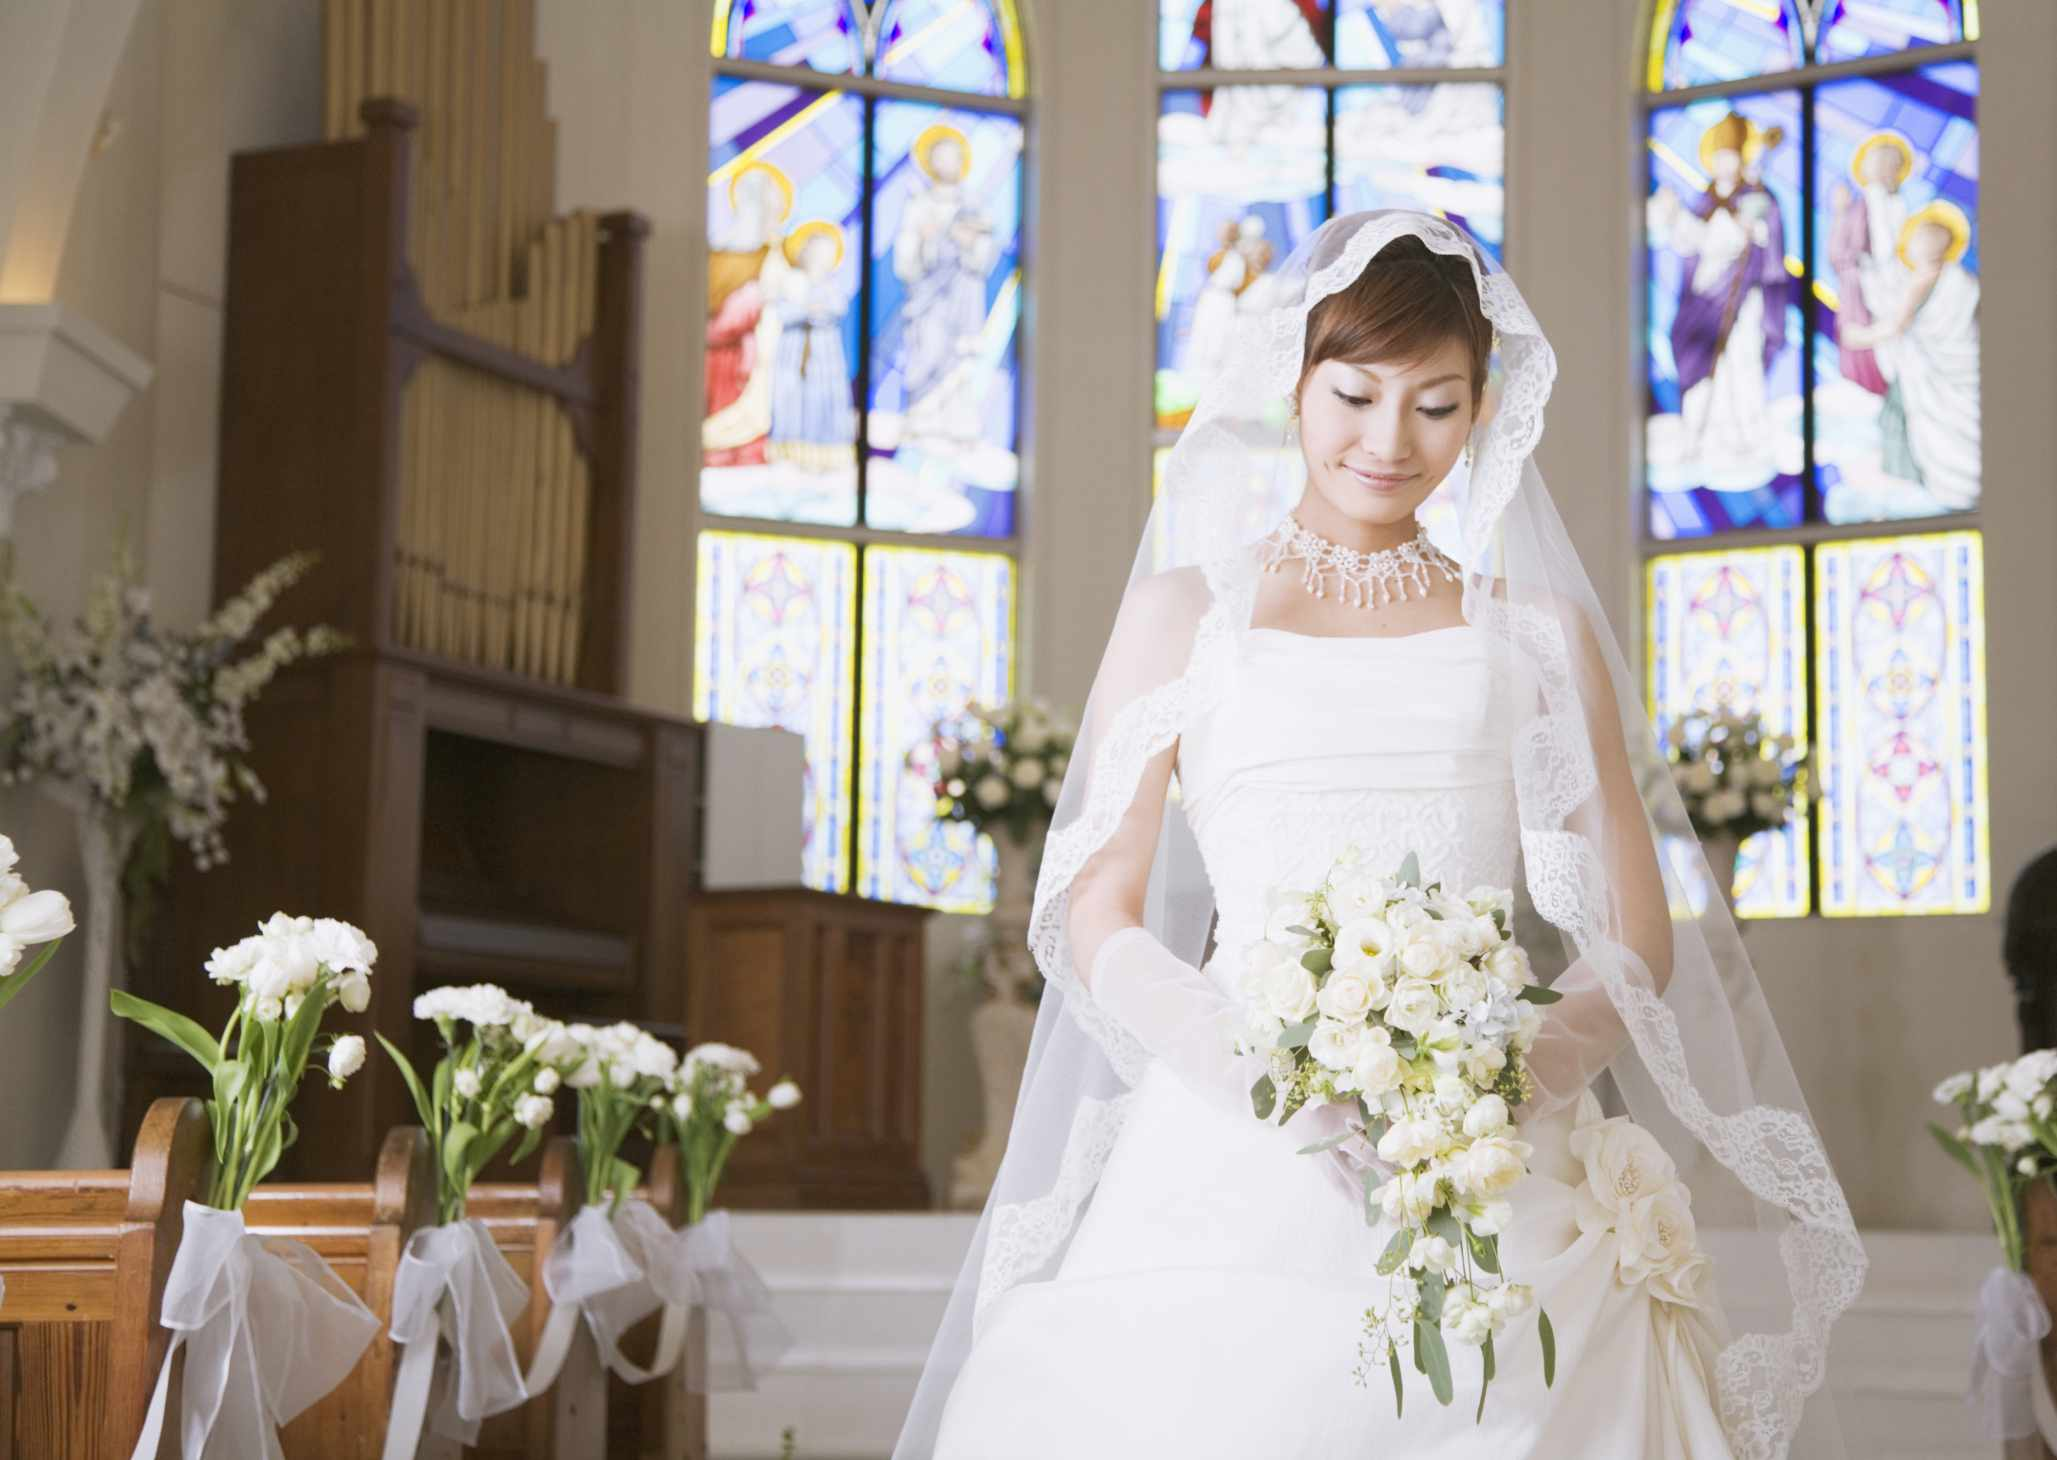 Wedding Ceremony Traditional.Find The Perfect Wedding Ceremony For You